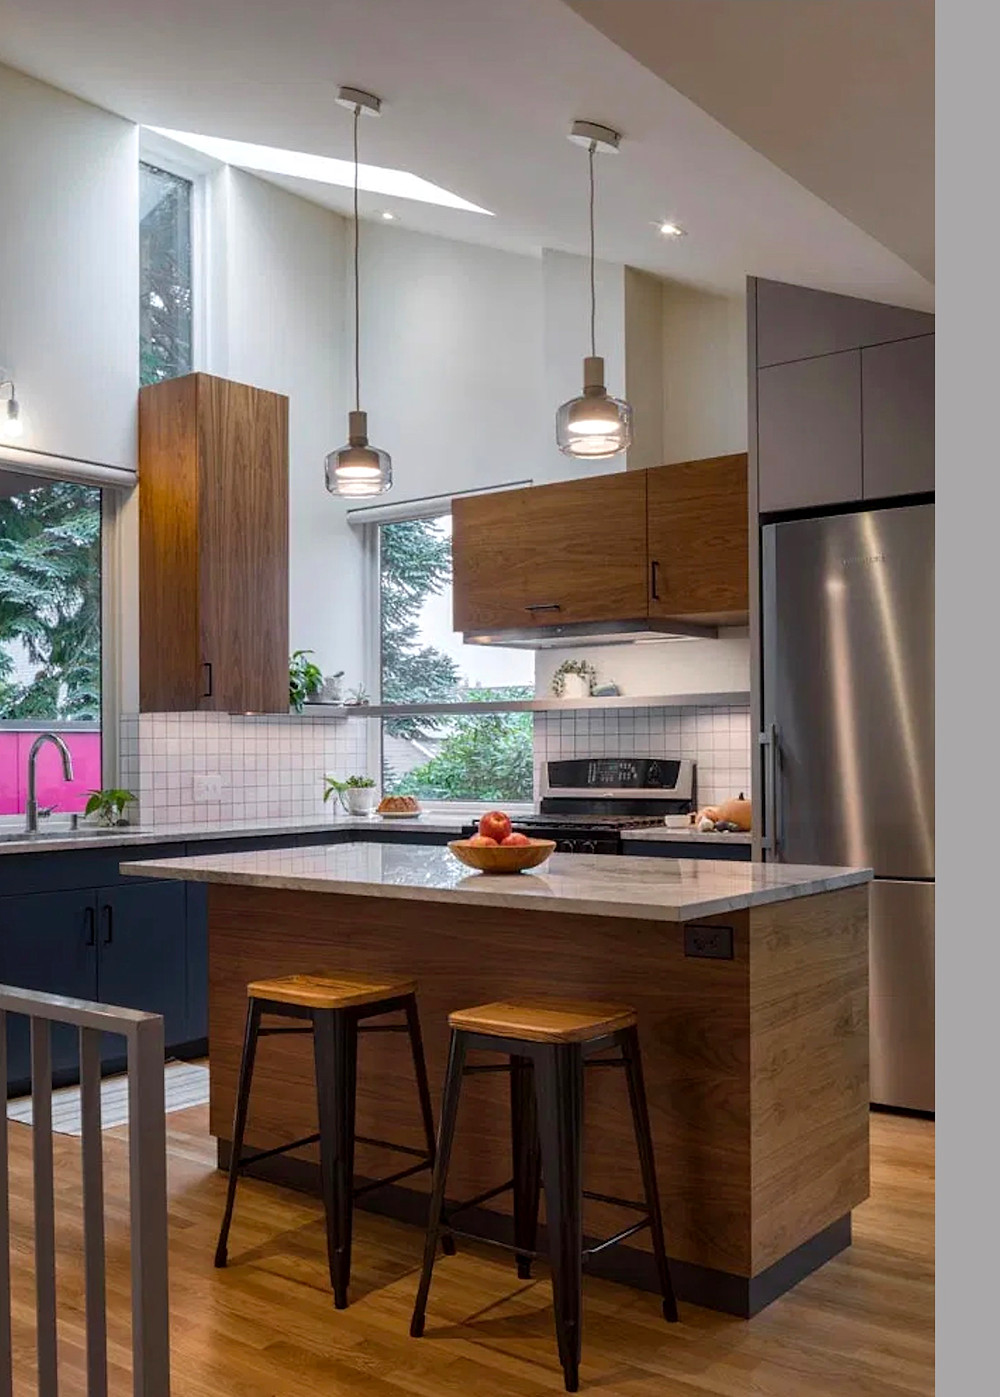 Modern modular kitchen with island wood cabinets and blue cabinets